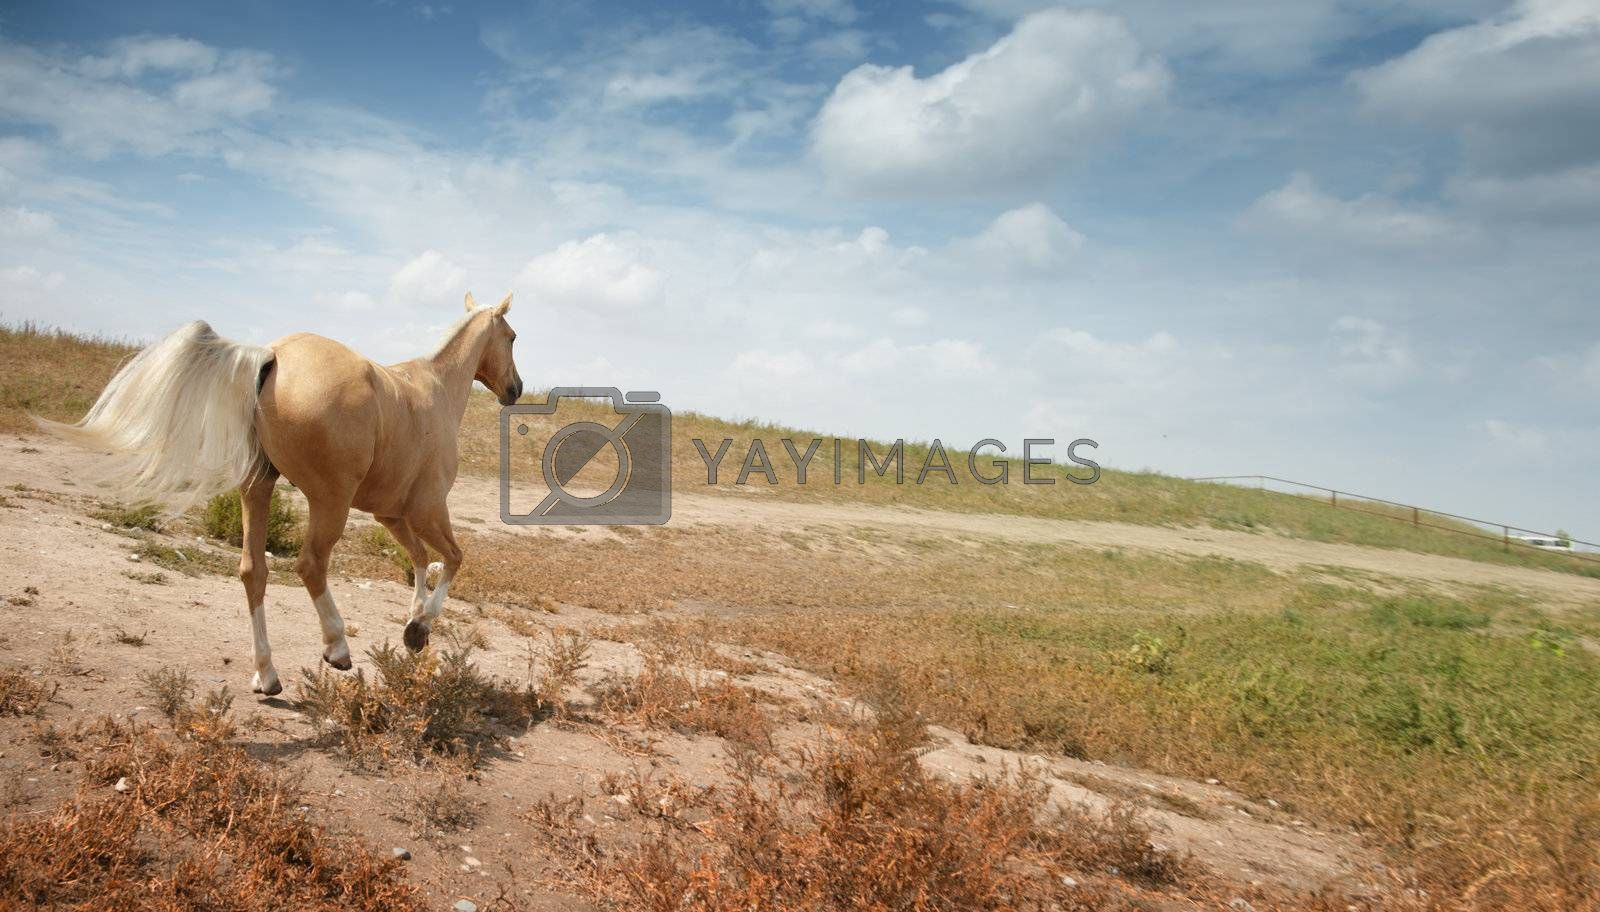 Running horse. Kazakhstan. Natural light and colors